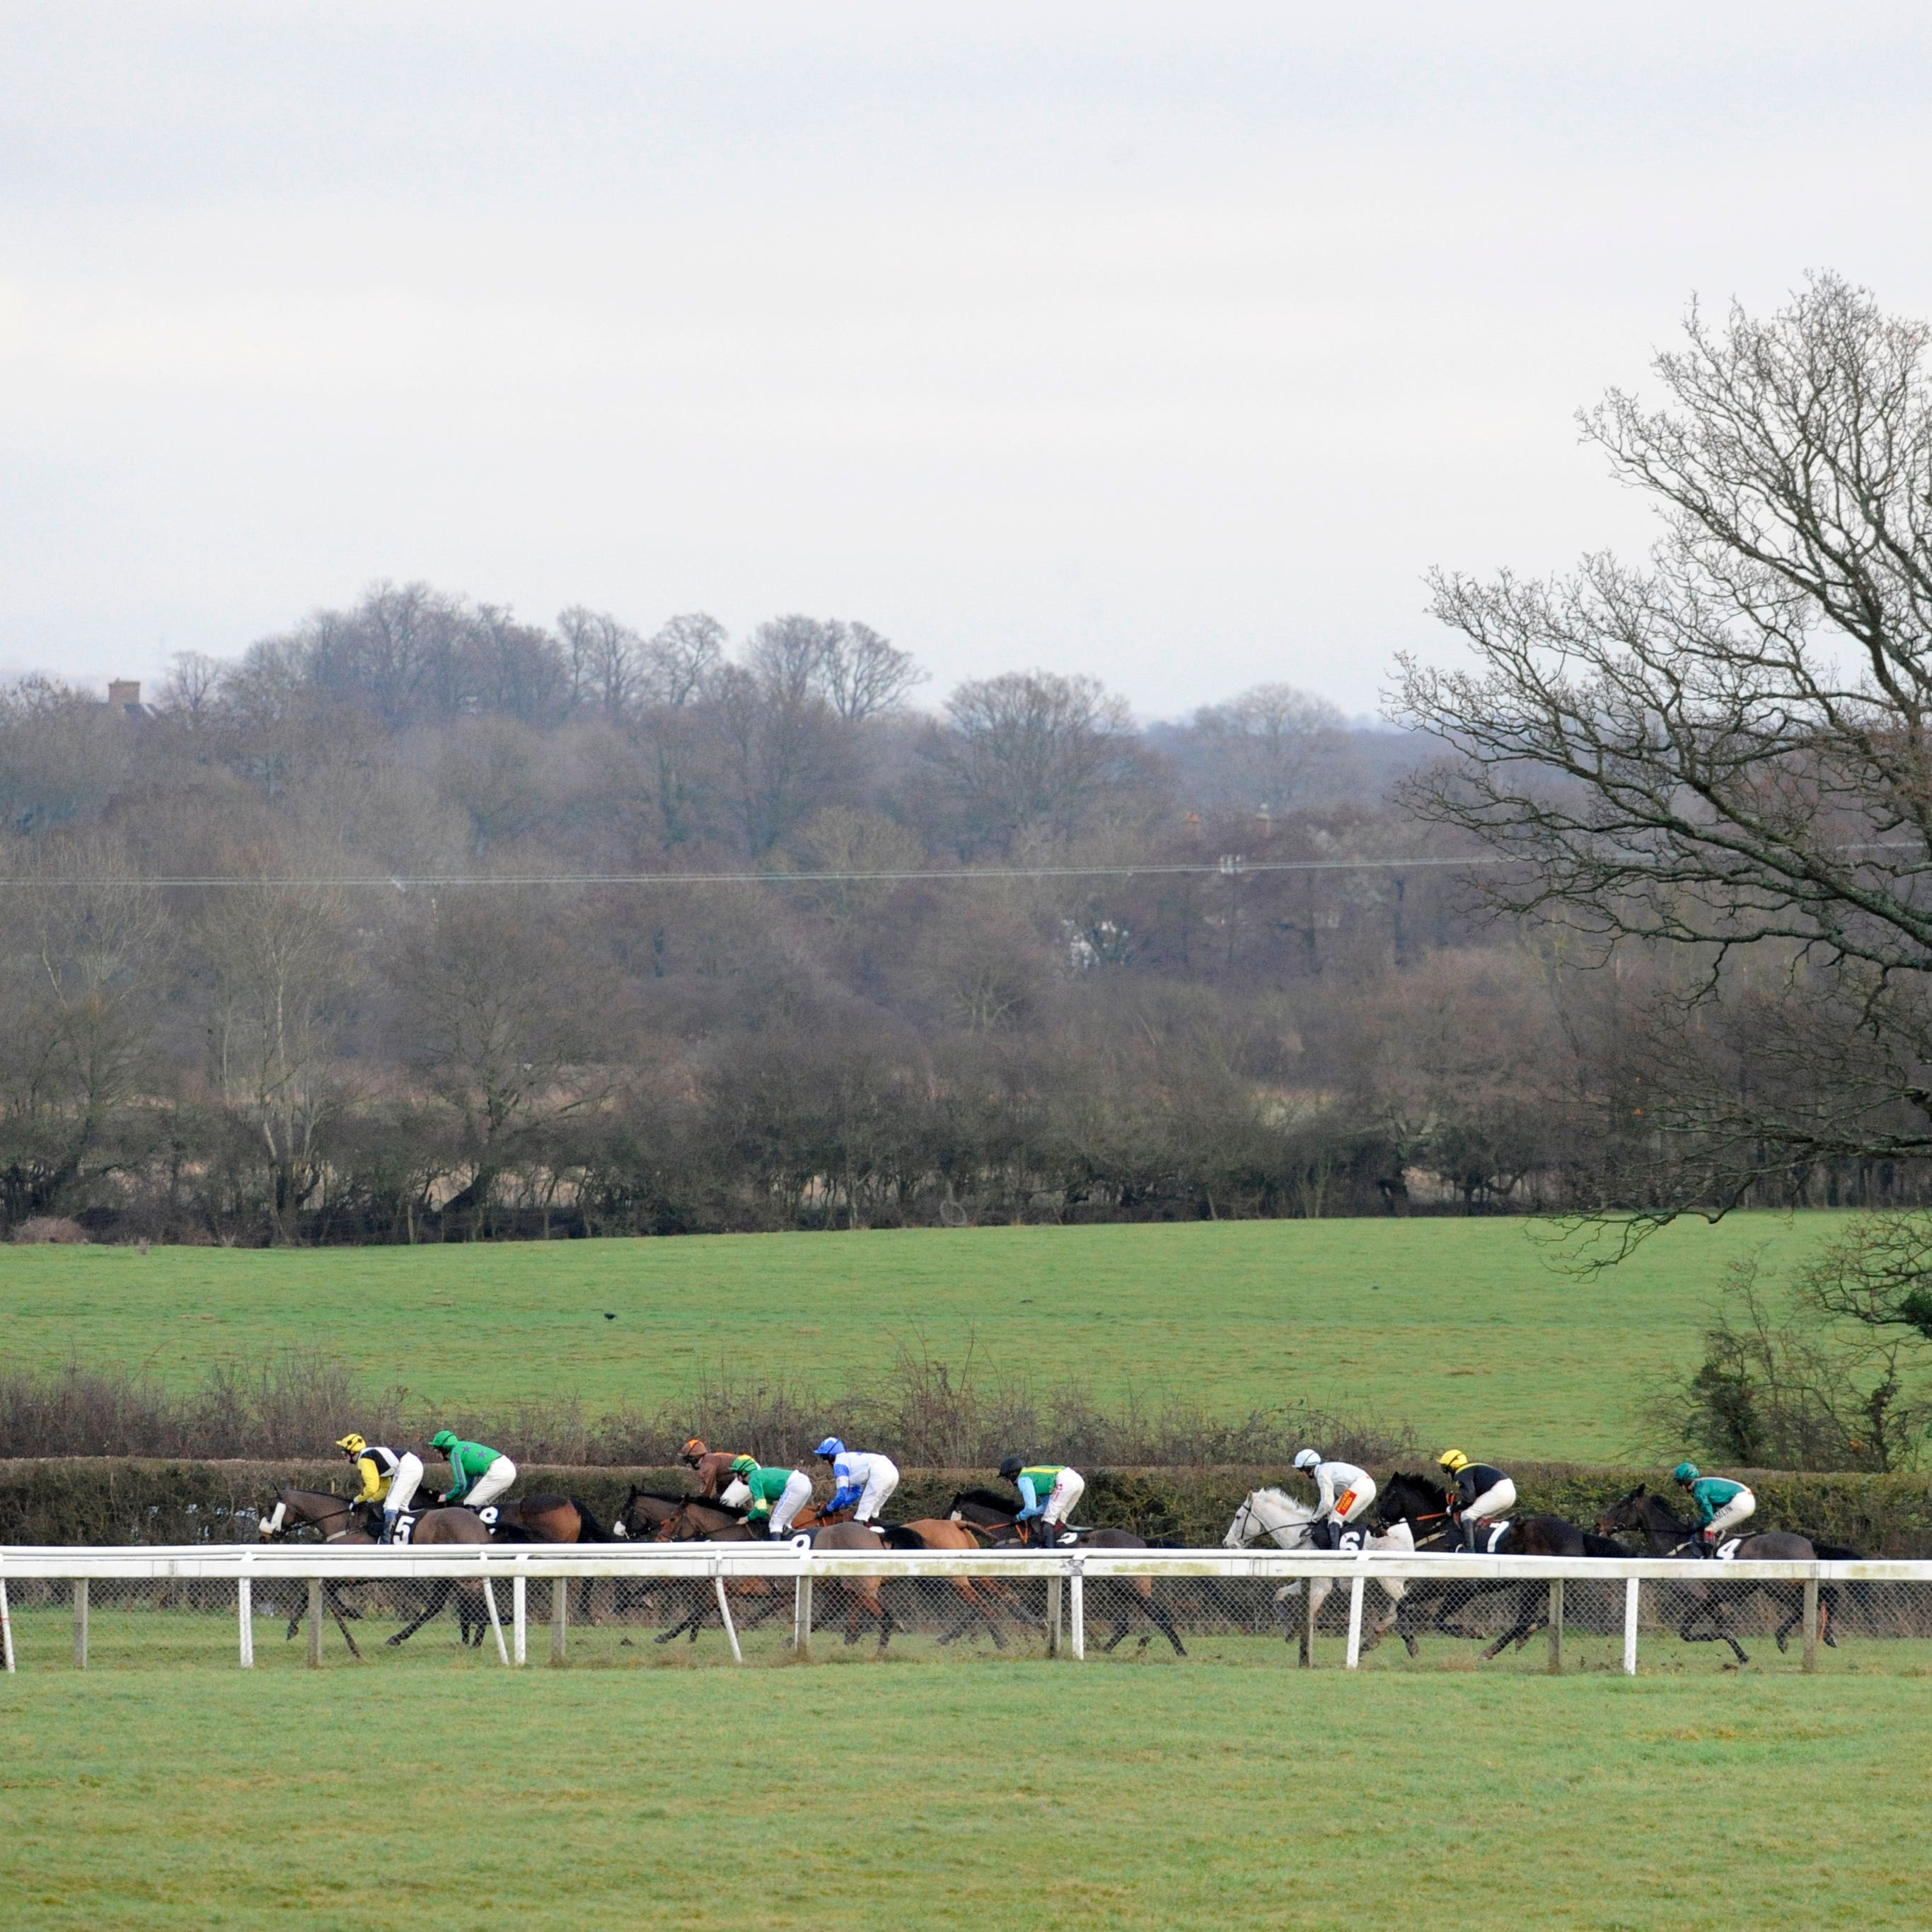 Plumpton staged the Sussex National, won in fine style by The Two Amigos